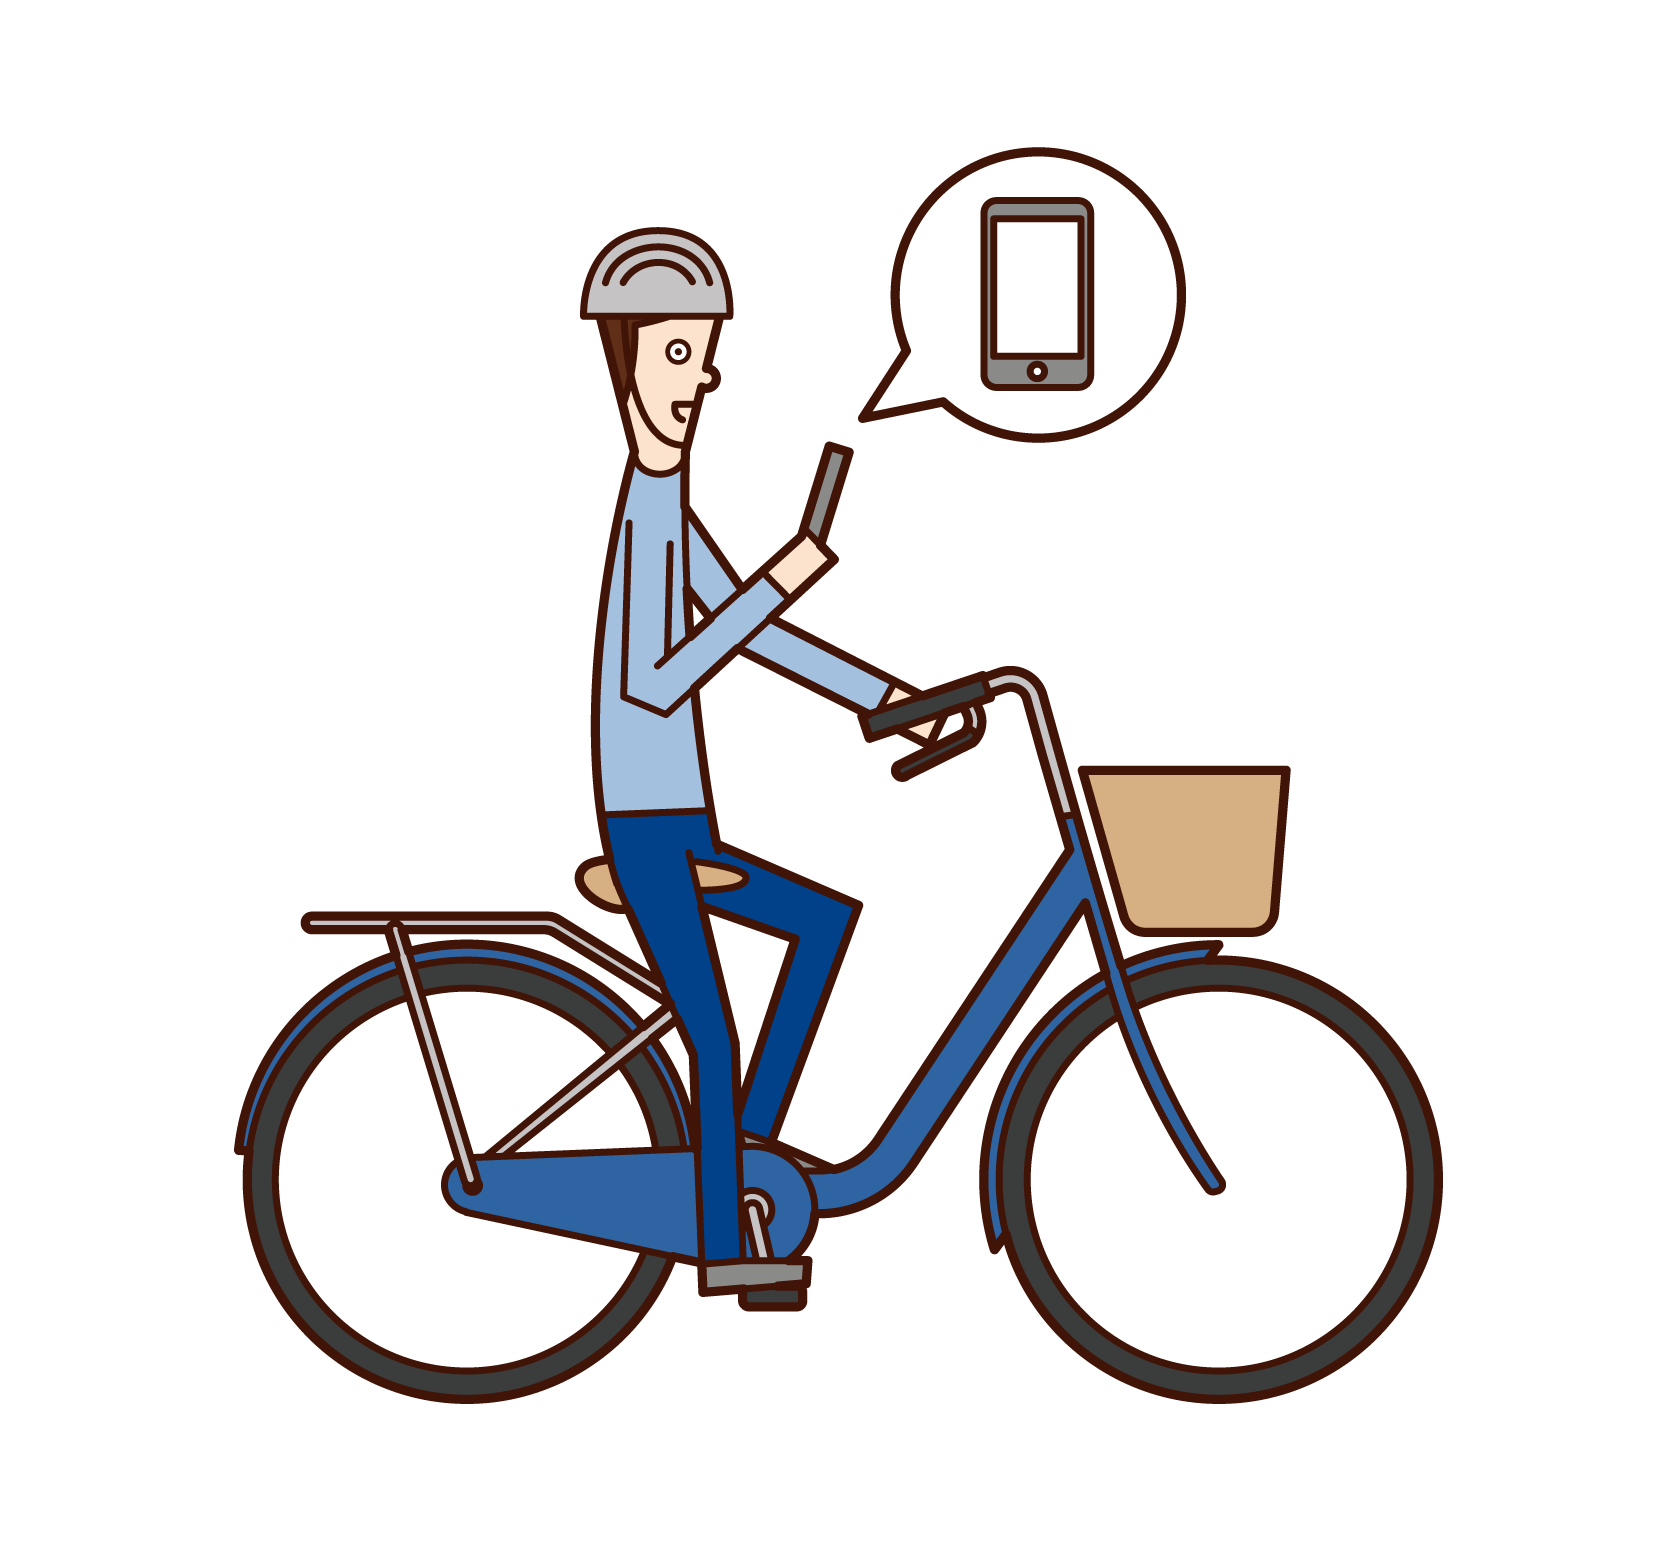 Illustration of a man riding a bicycle while operating a smartphone